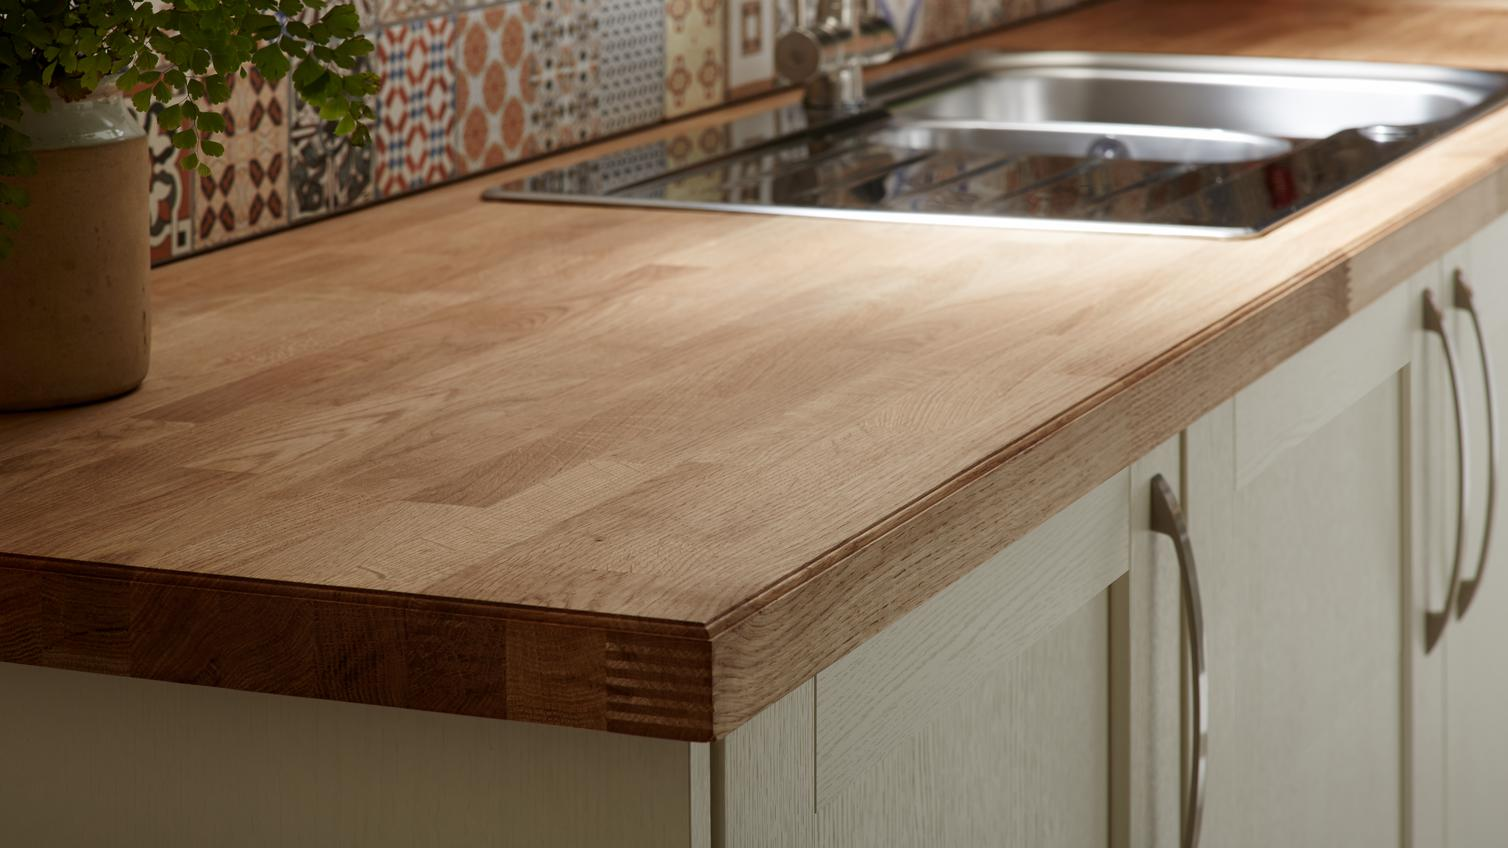 Allendale Antique White Worktop 1 RT_RT1